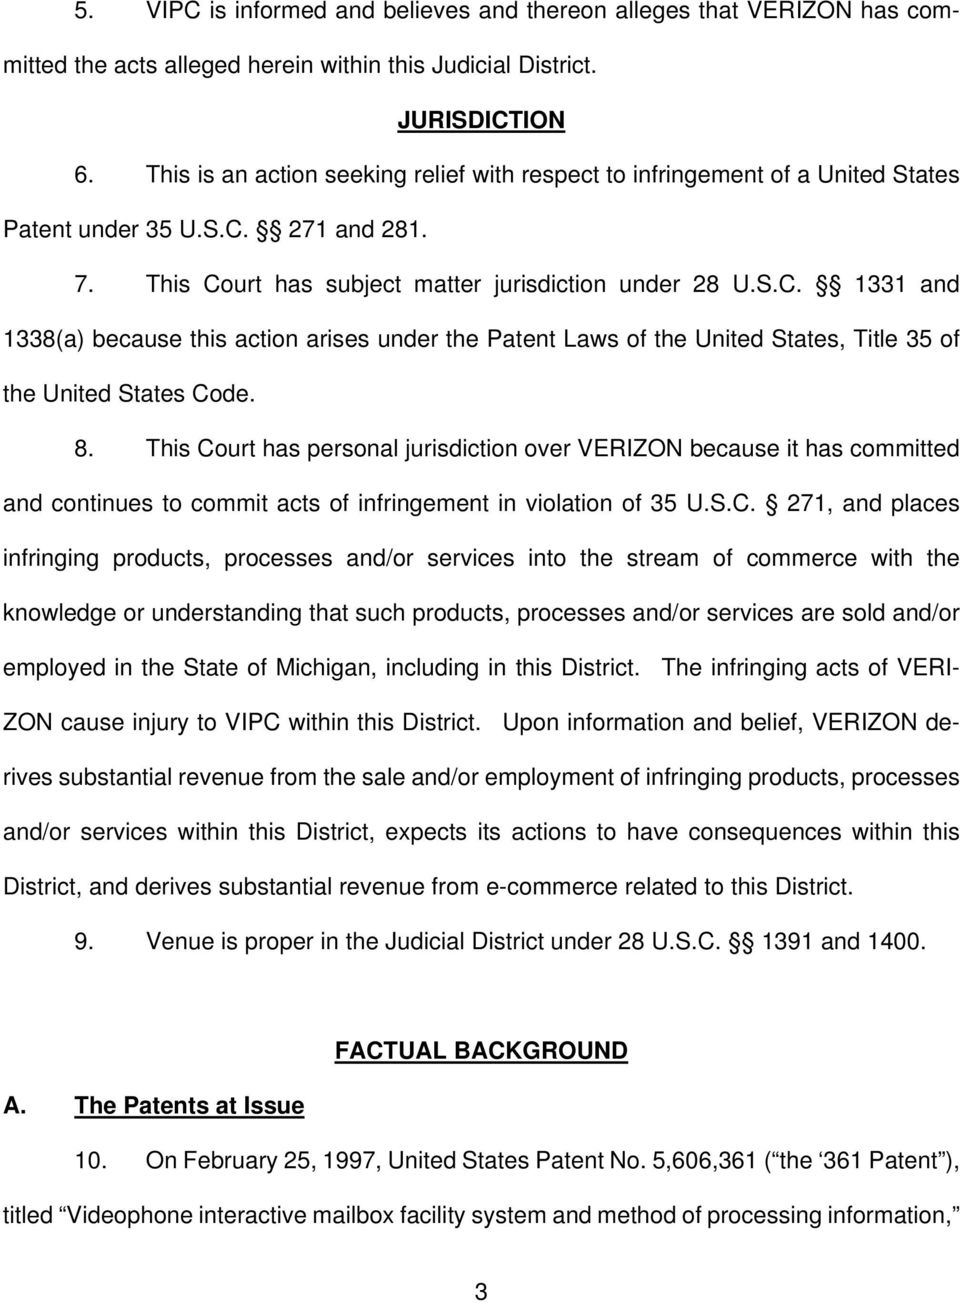 271 and 281. 7. This Court has subject matter jurisdiction under 28 U.S.C. 1331 and 1338(a) because this action arises under the Patent Laws of the United States, Title 35 of the United States Code.